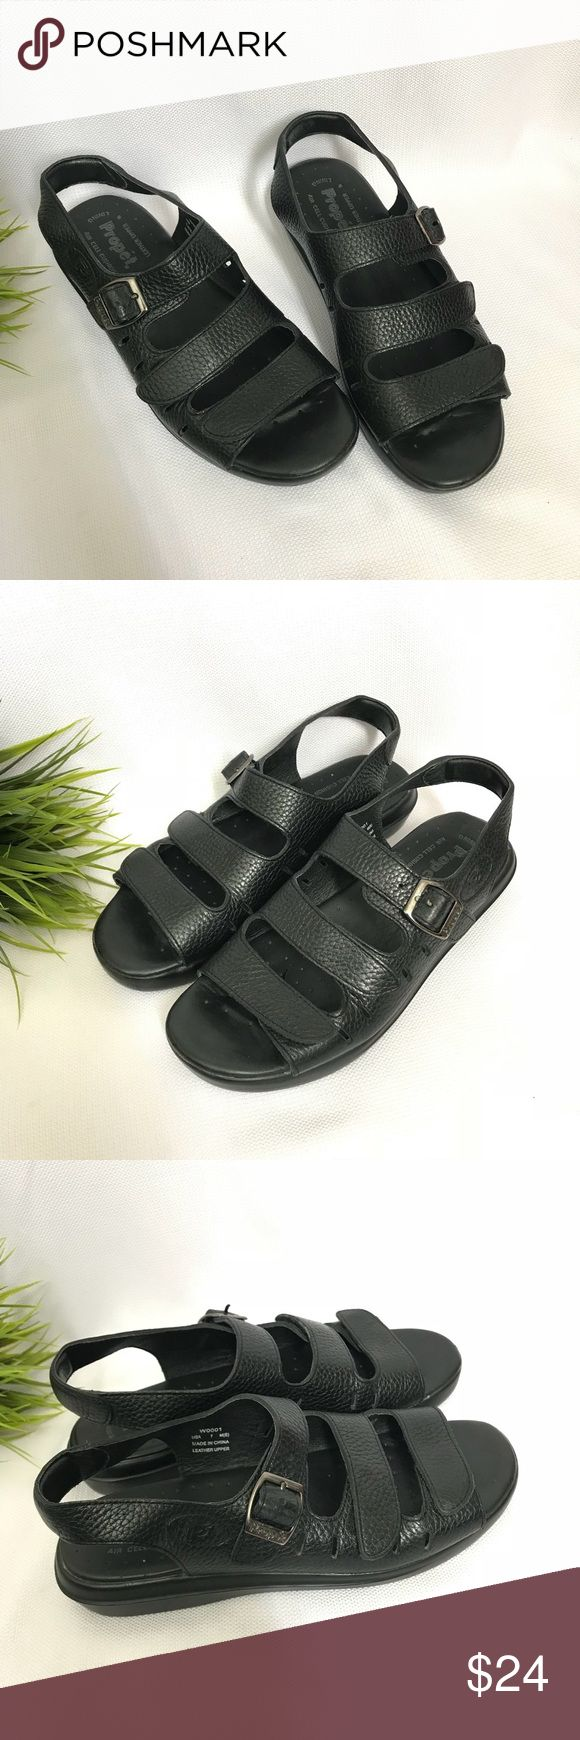 Propet Leather comfort Sandals Propet leather sandals  Adjustable strap for perfect fit  Comfort sandals   Size - 7  Very good condition, light wear Propet Shoes Sandals